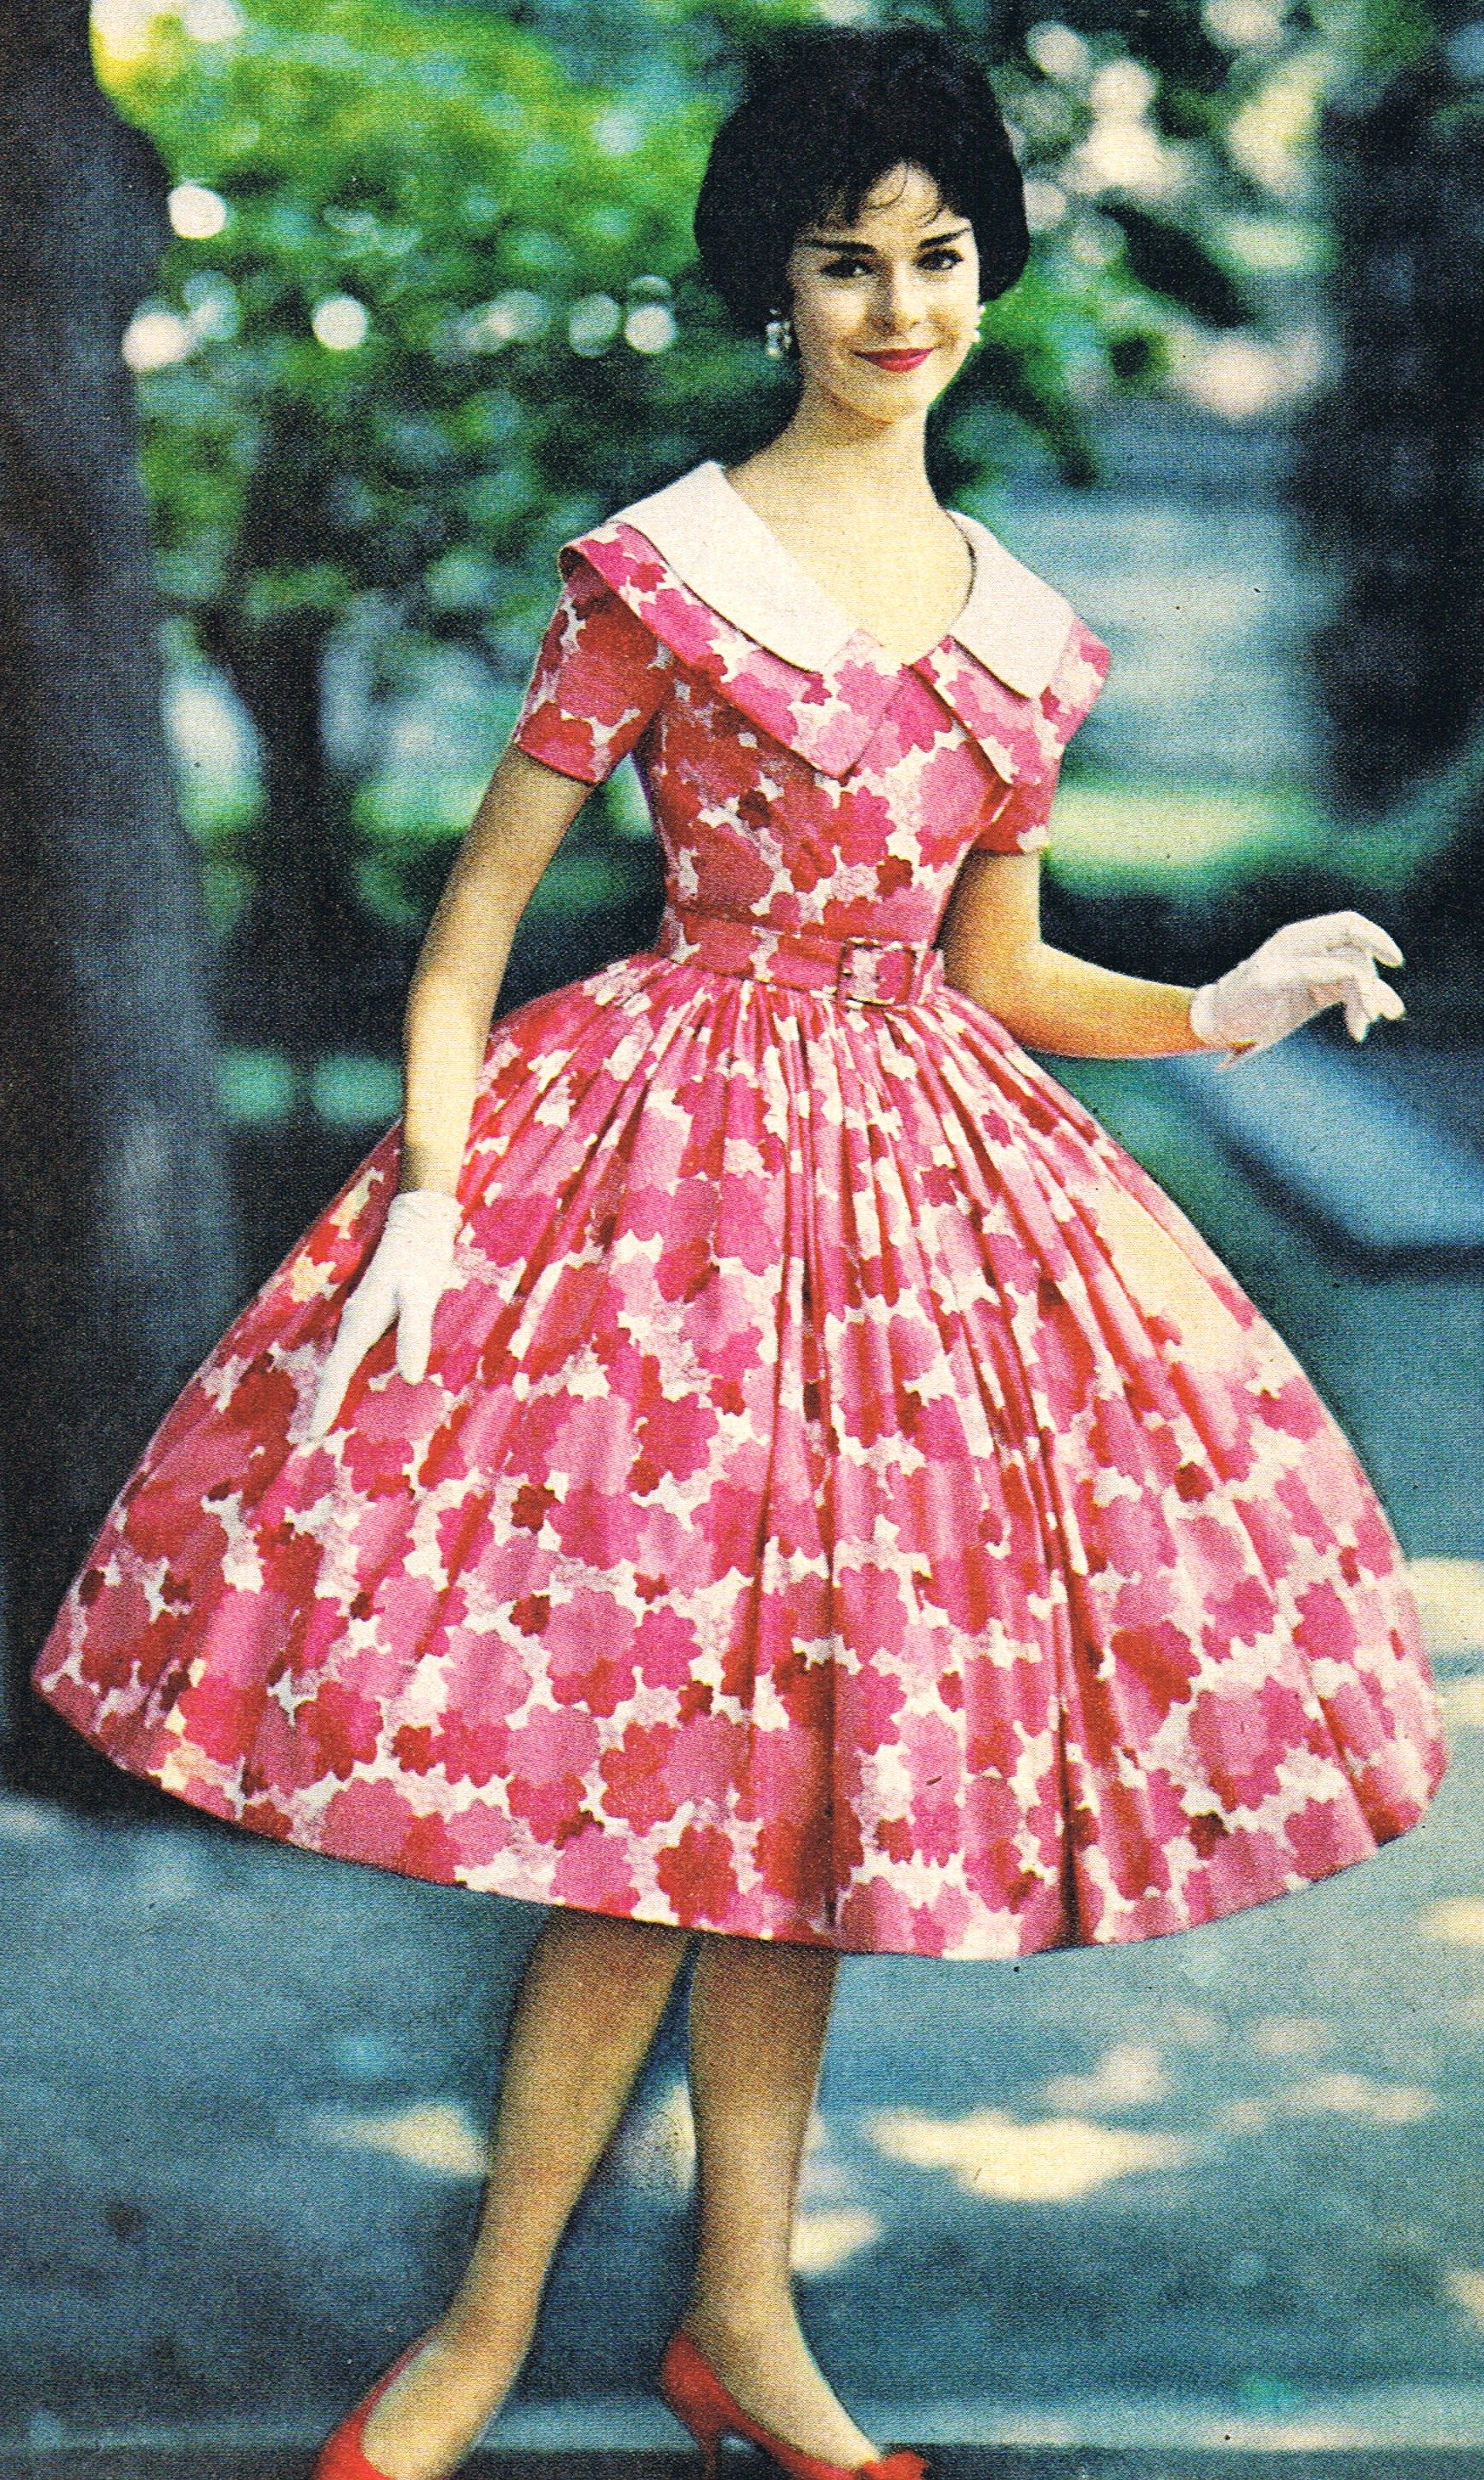 pretty floral dress - McCalls 1959 | Things to sew | Pinterest ...